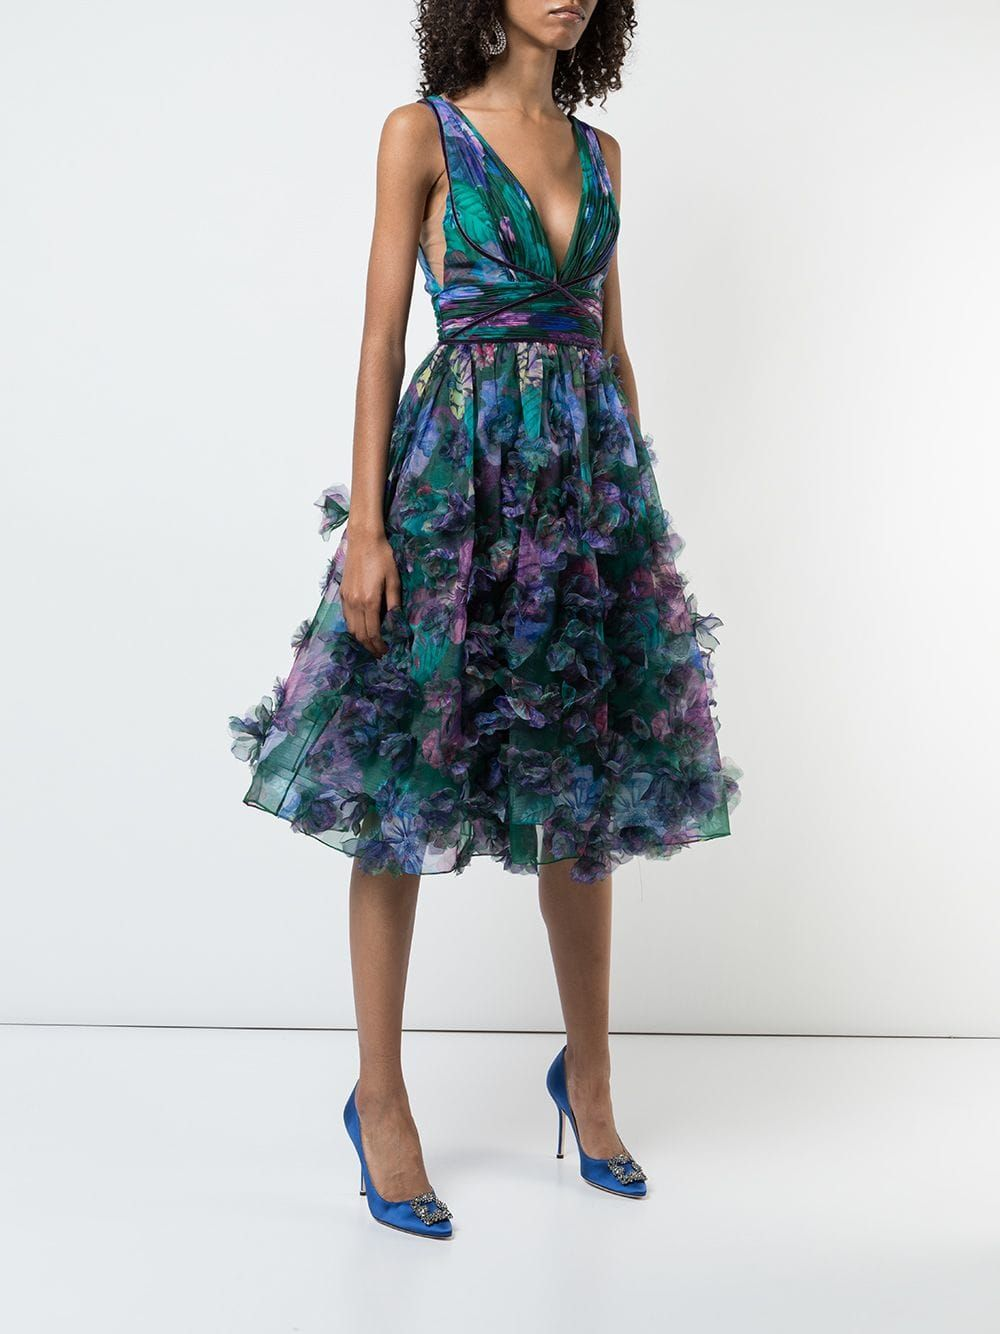 8cfeec35 Marchesa Notte floral-appliquéd midi dress $557 - Buy Online AW18 - Quick  Shipping, Price